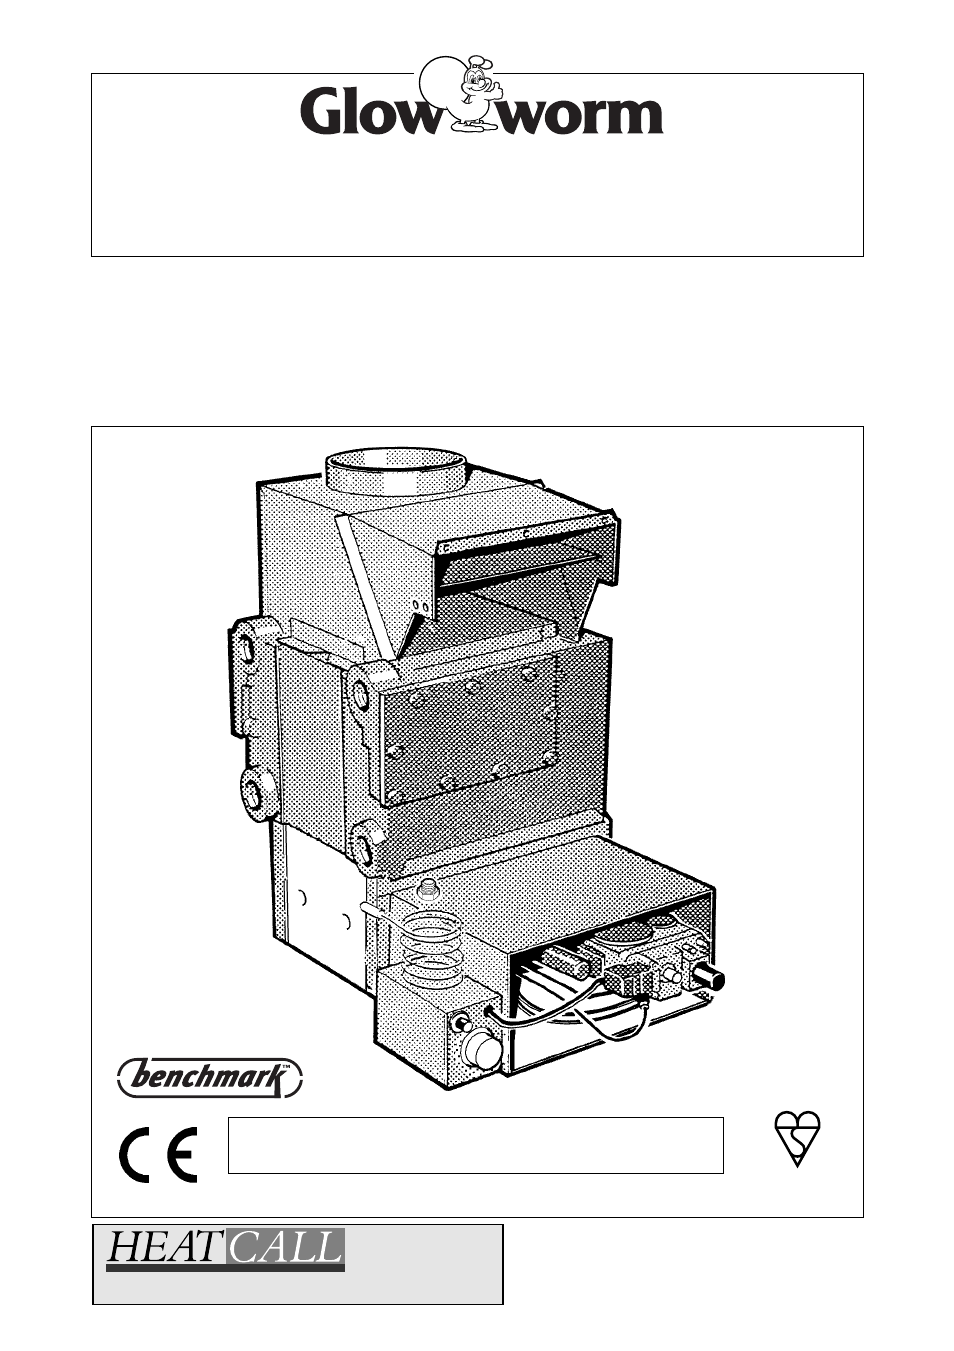 Glow-worm 56-2 Back Boiler User Manual | 24 pages